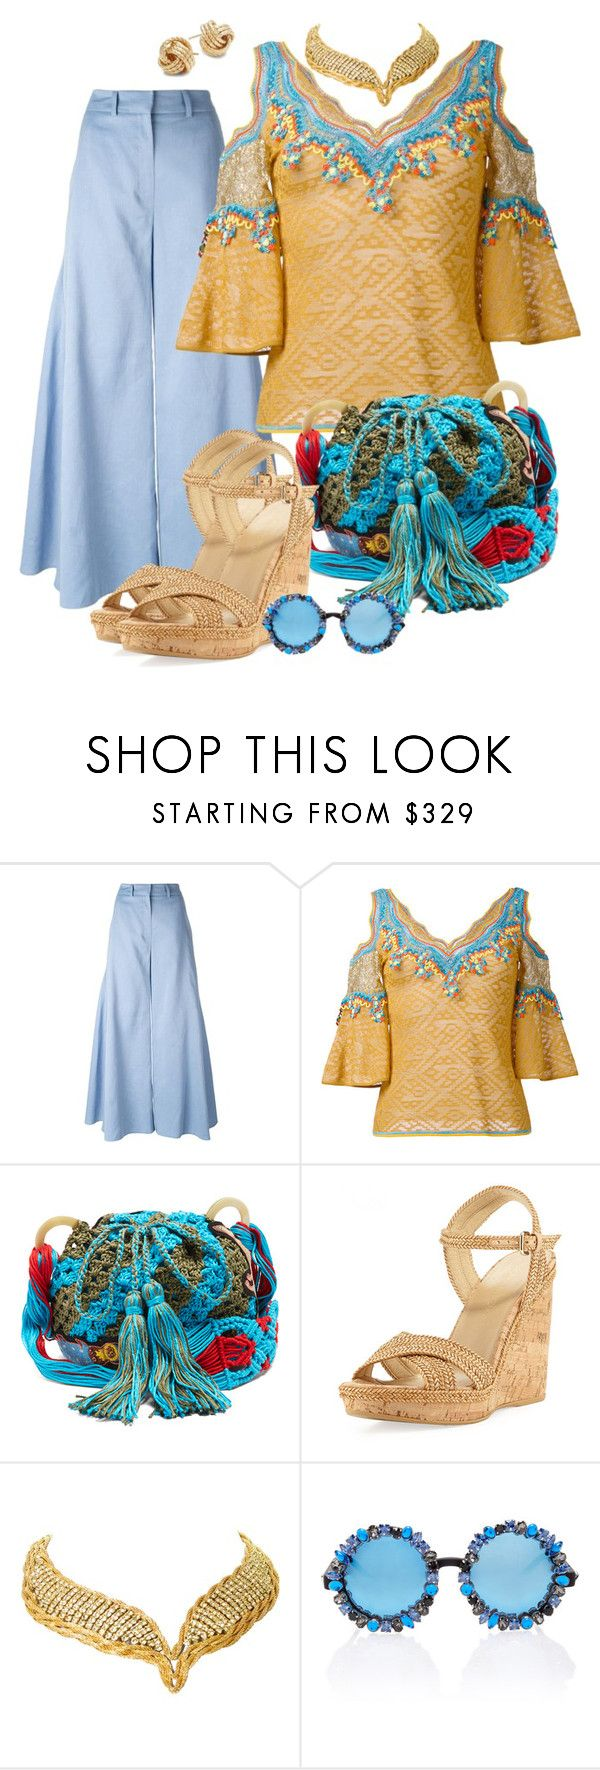 """""""Embroidered Top"""" by fantasiegirl ❤ liked on Polyvore featuring Peter Pilotto, Stuart Weitzman, Hattie Carnegie, A-Morir by Kerin Rose and Saks Fifth Avenue"""